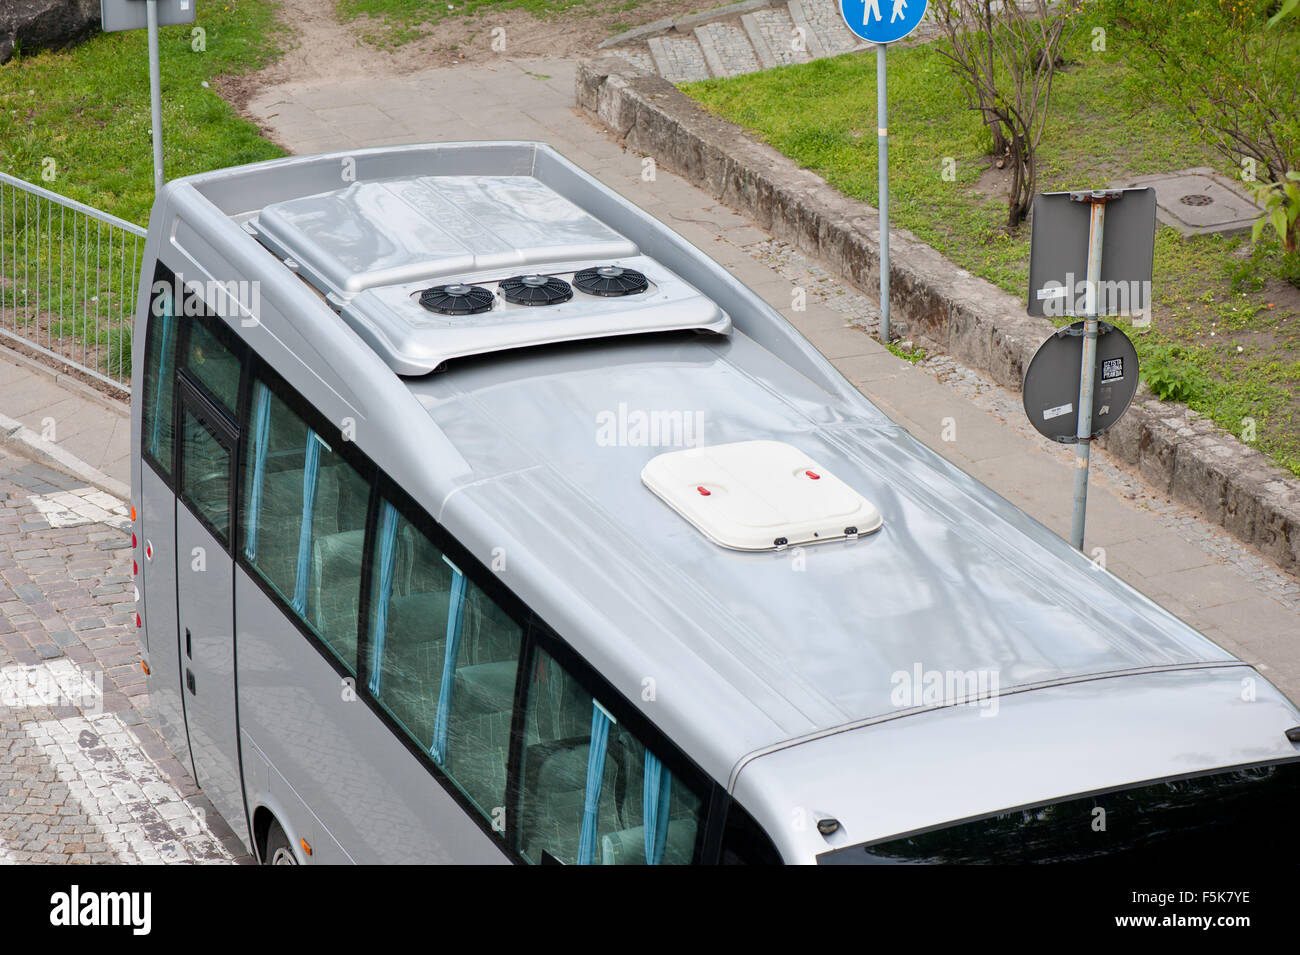 Tourist bus rooftop air conditioner unit, conform heat control element, cooling appliance installed on the coach - Stock Image